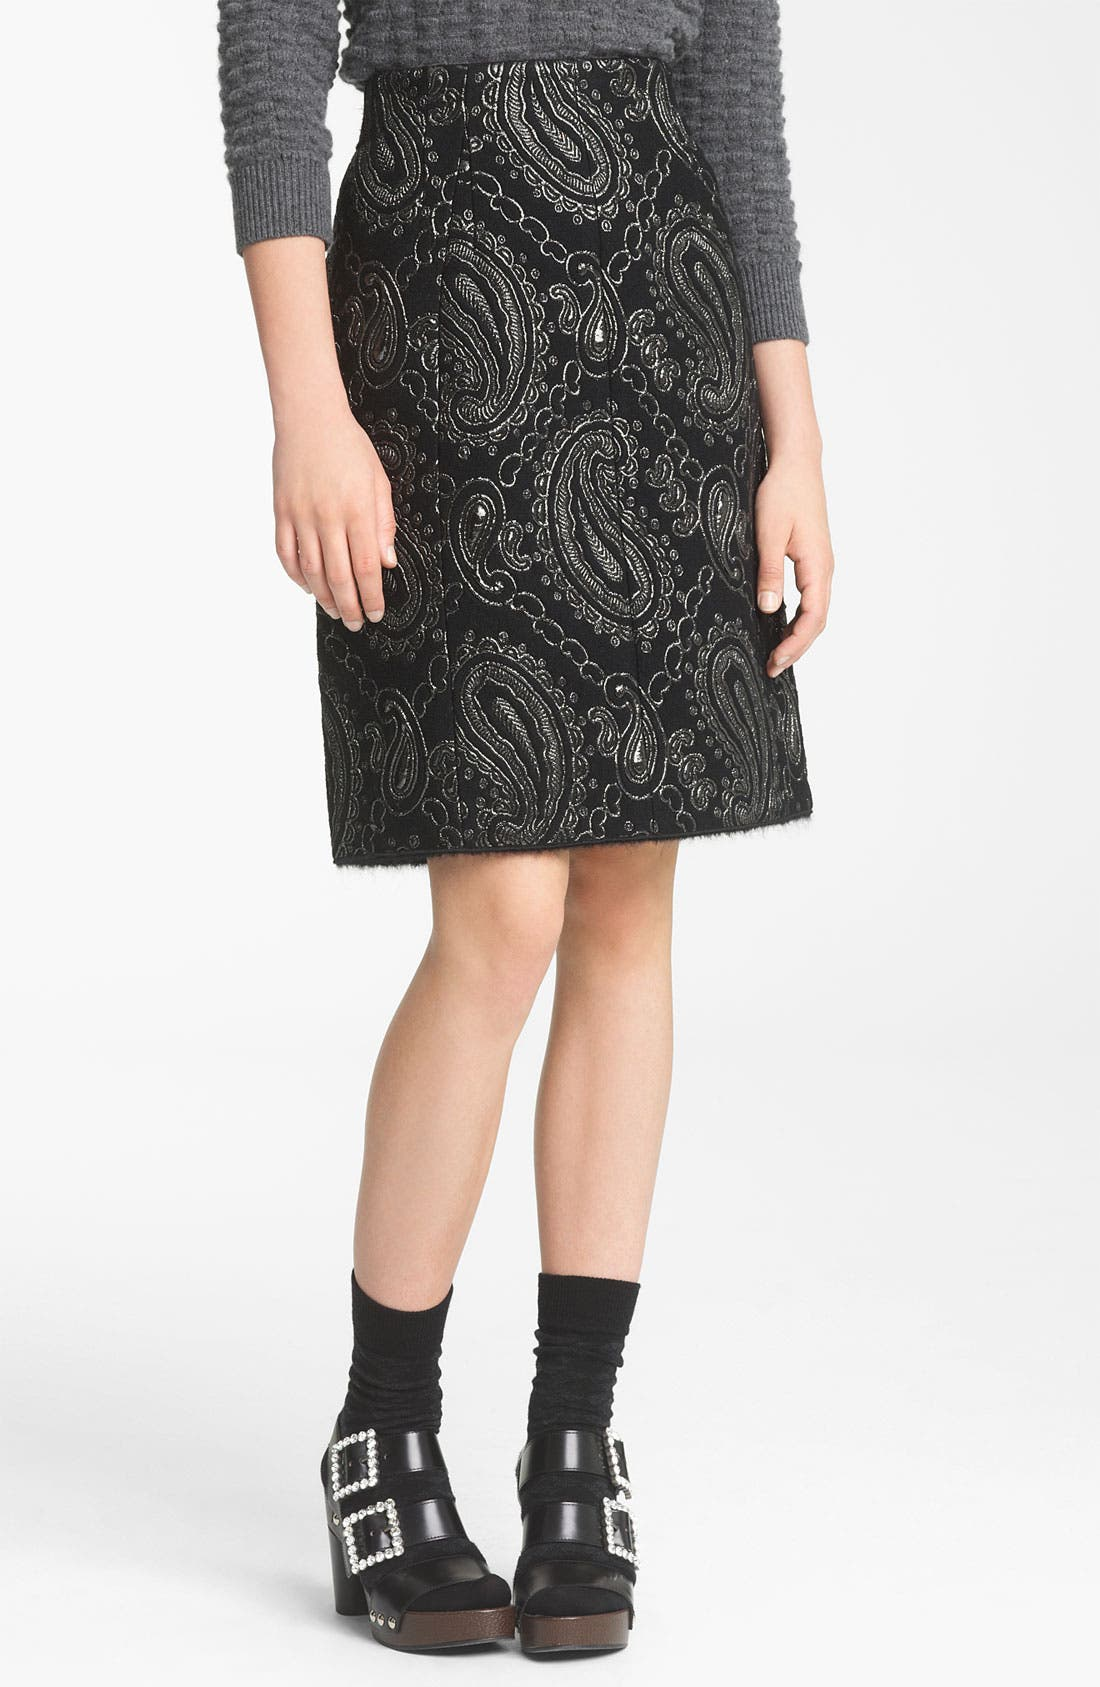 Alternate Image 1 Selected - MARC JACOBS Metallic Paisley Jacquard Pencil Skirt